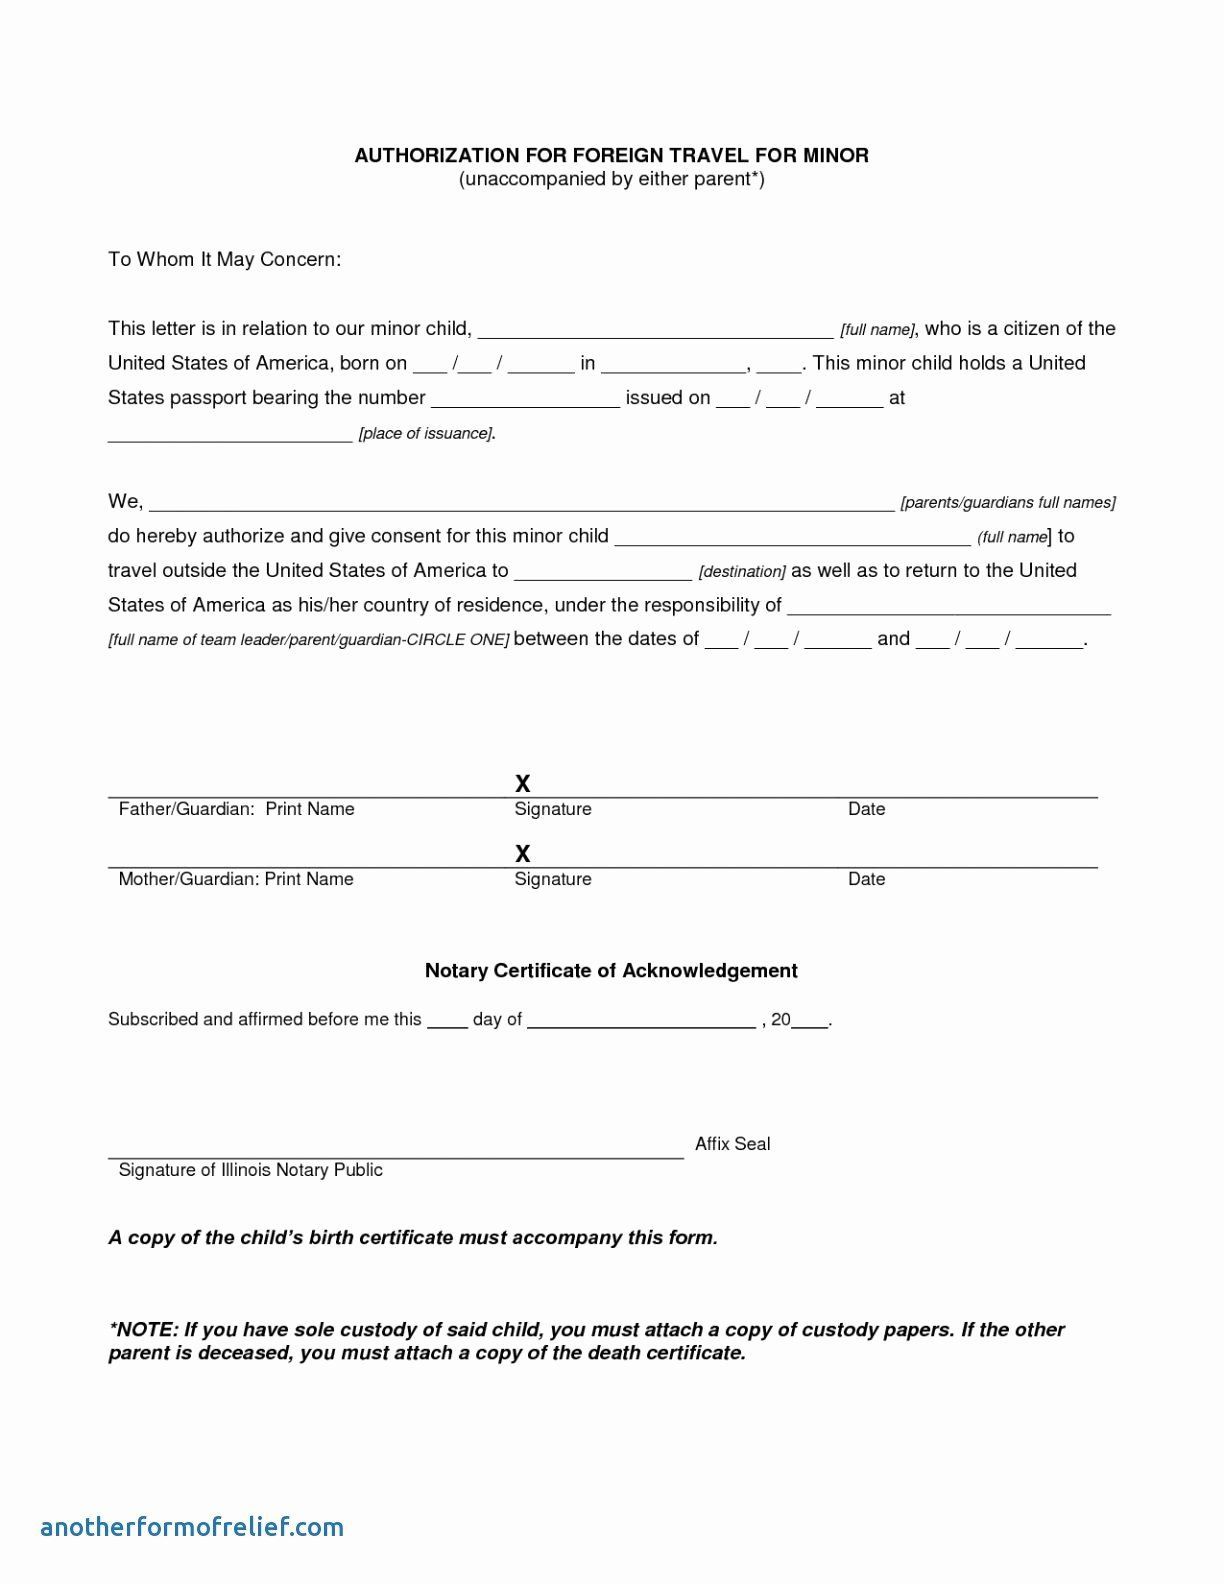 Notarized Letter Template Word Fresh Notarized Travel Consent Letter Template Collection Travel Consent Letter Consent Letter Travel Consent Form